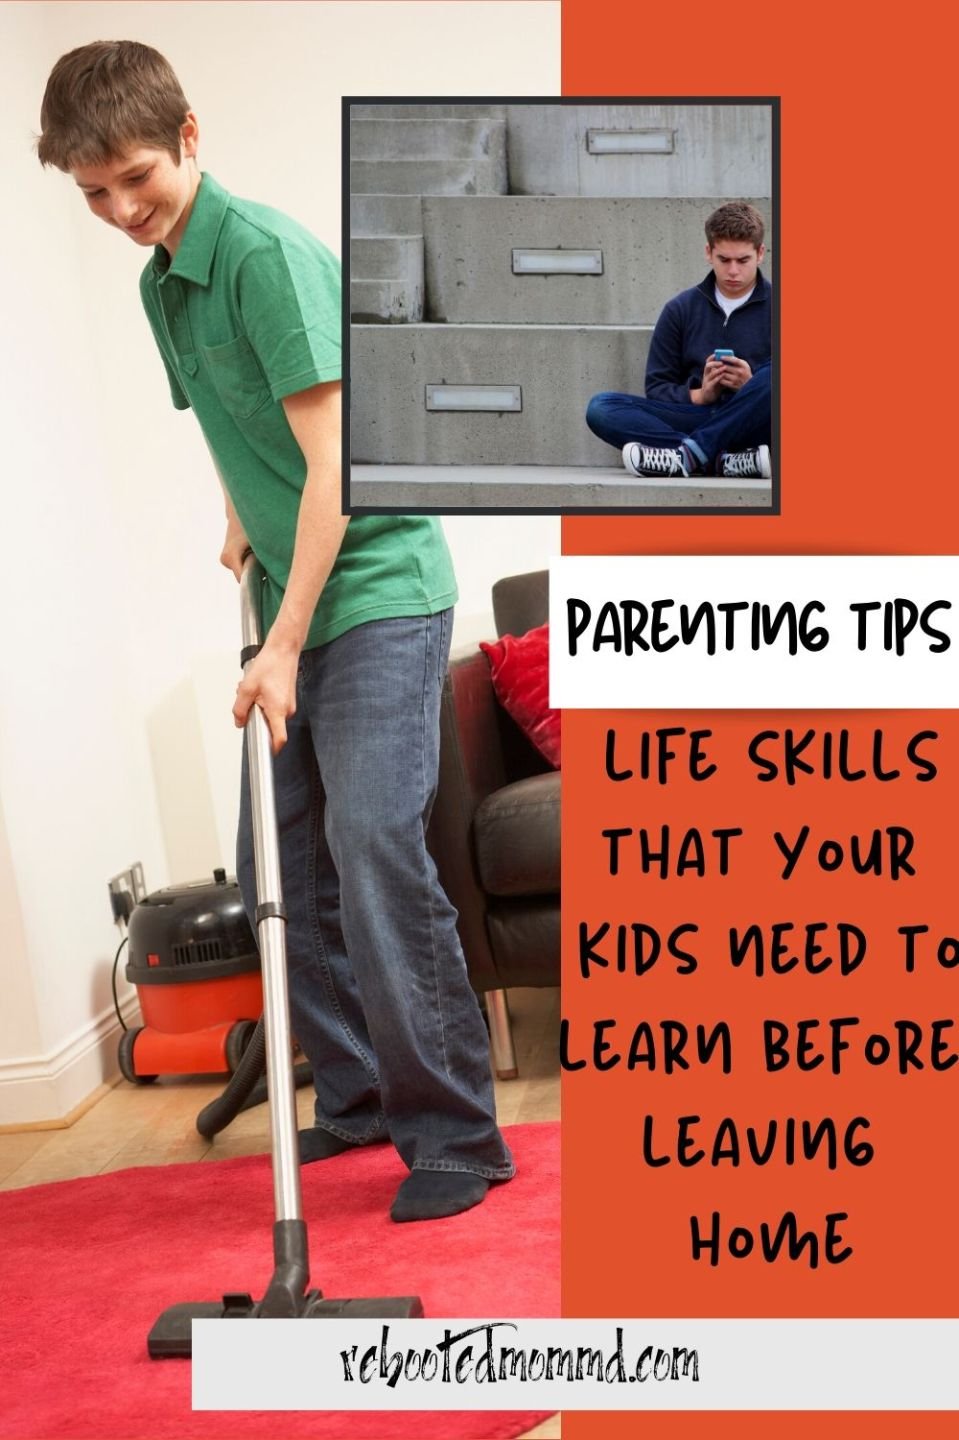 Life Skills Your Kid Needs to Learn Before Leaving Home